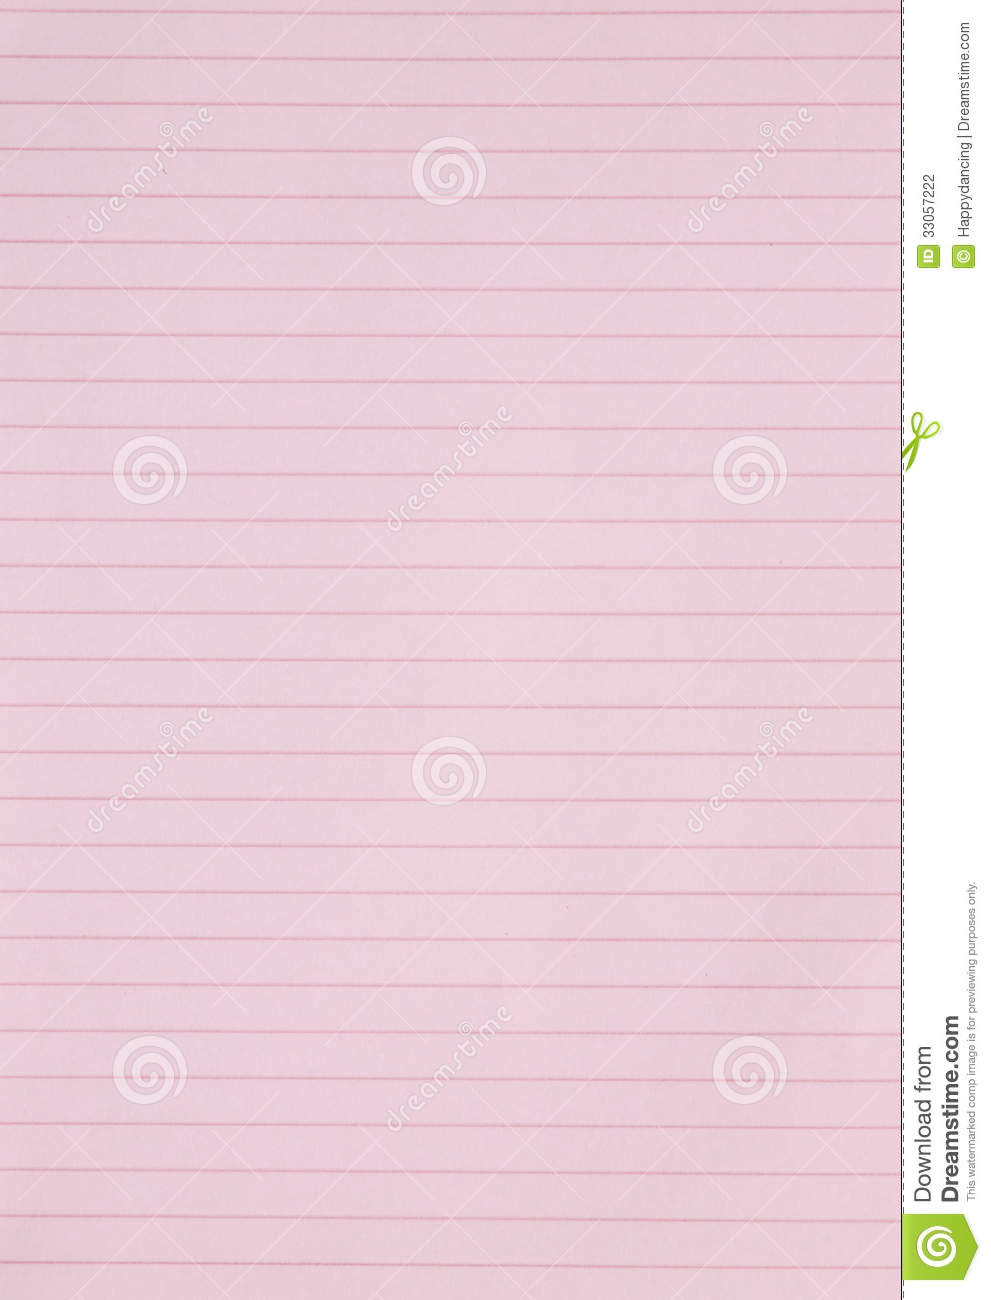 Cute Notepad Wallpaper Blank Pink Lined Paper Background Or Textured Stock